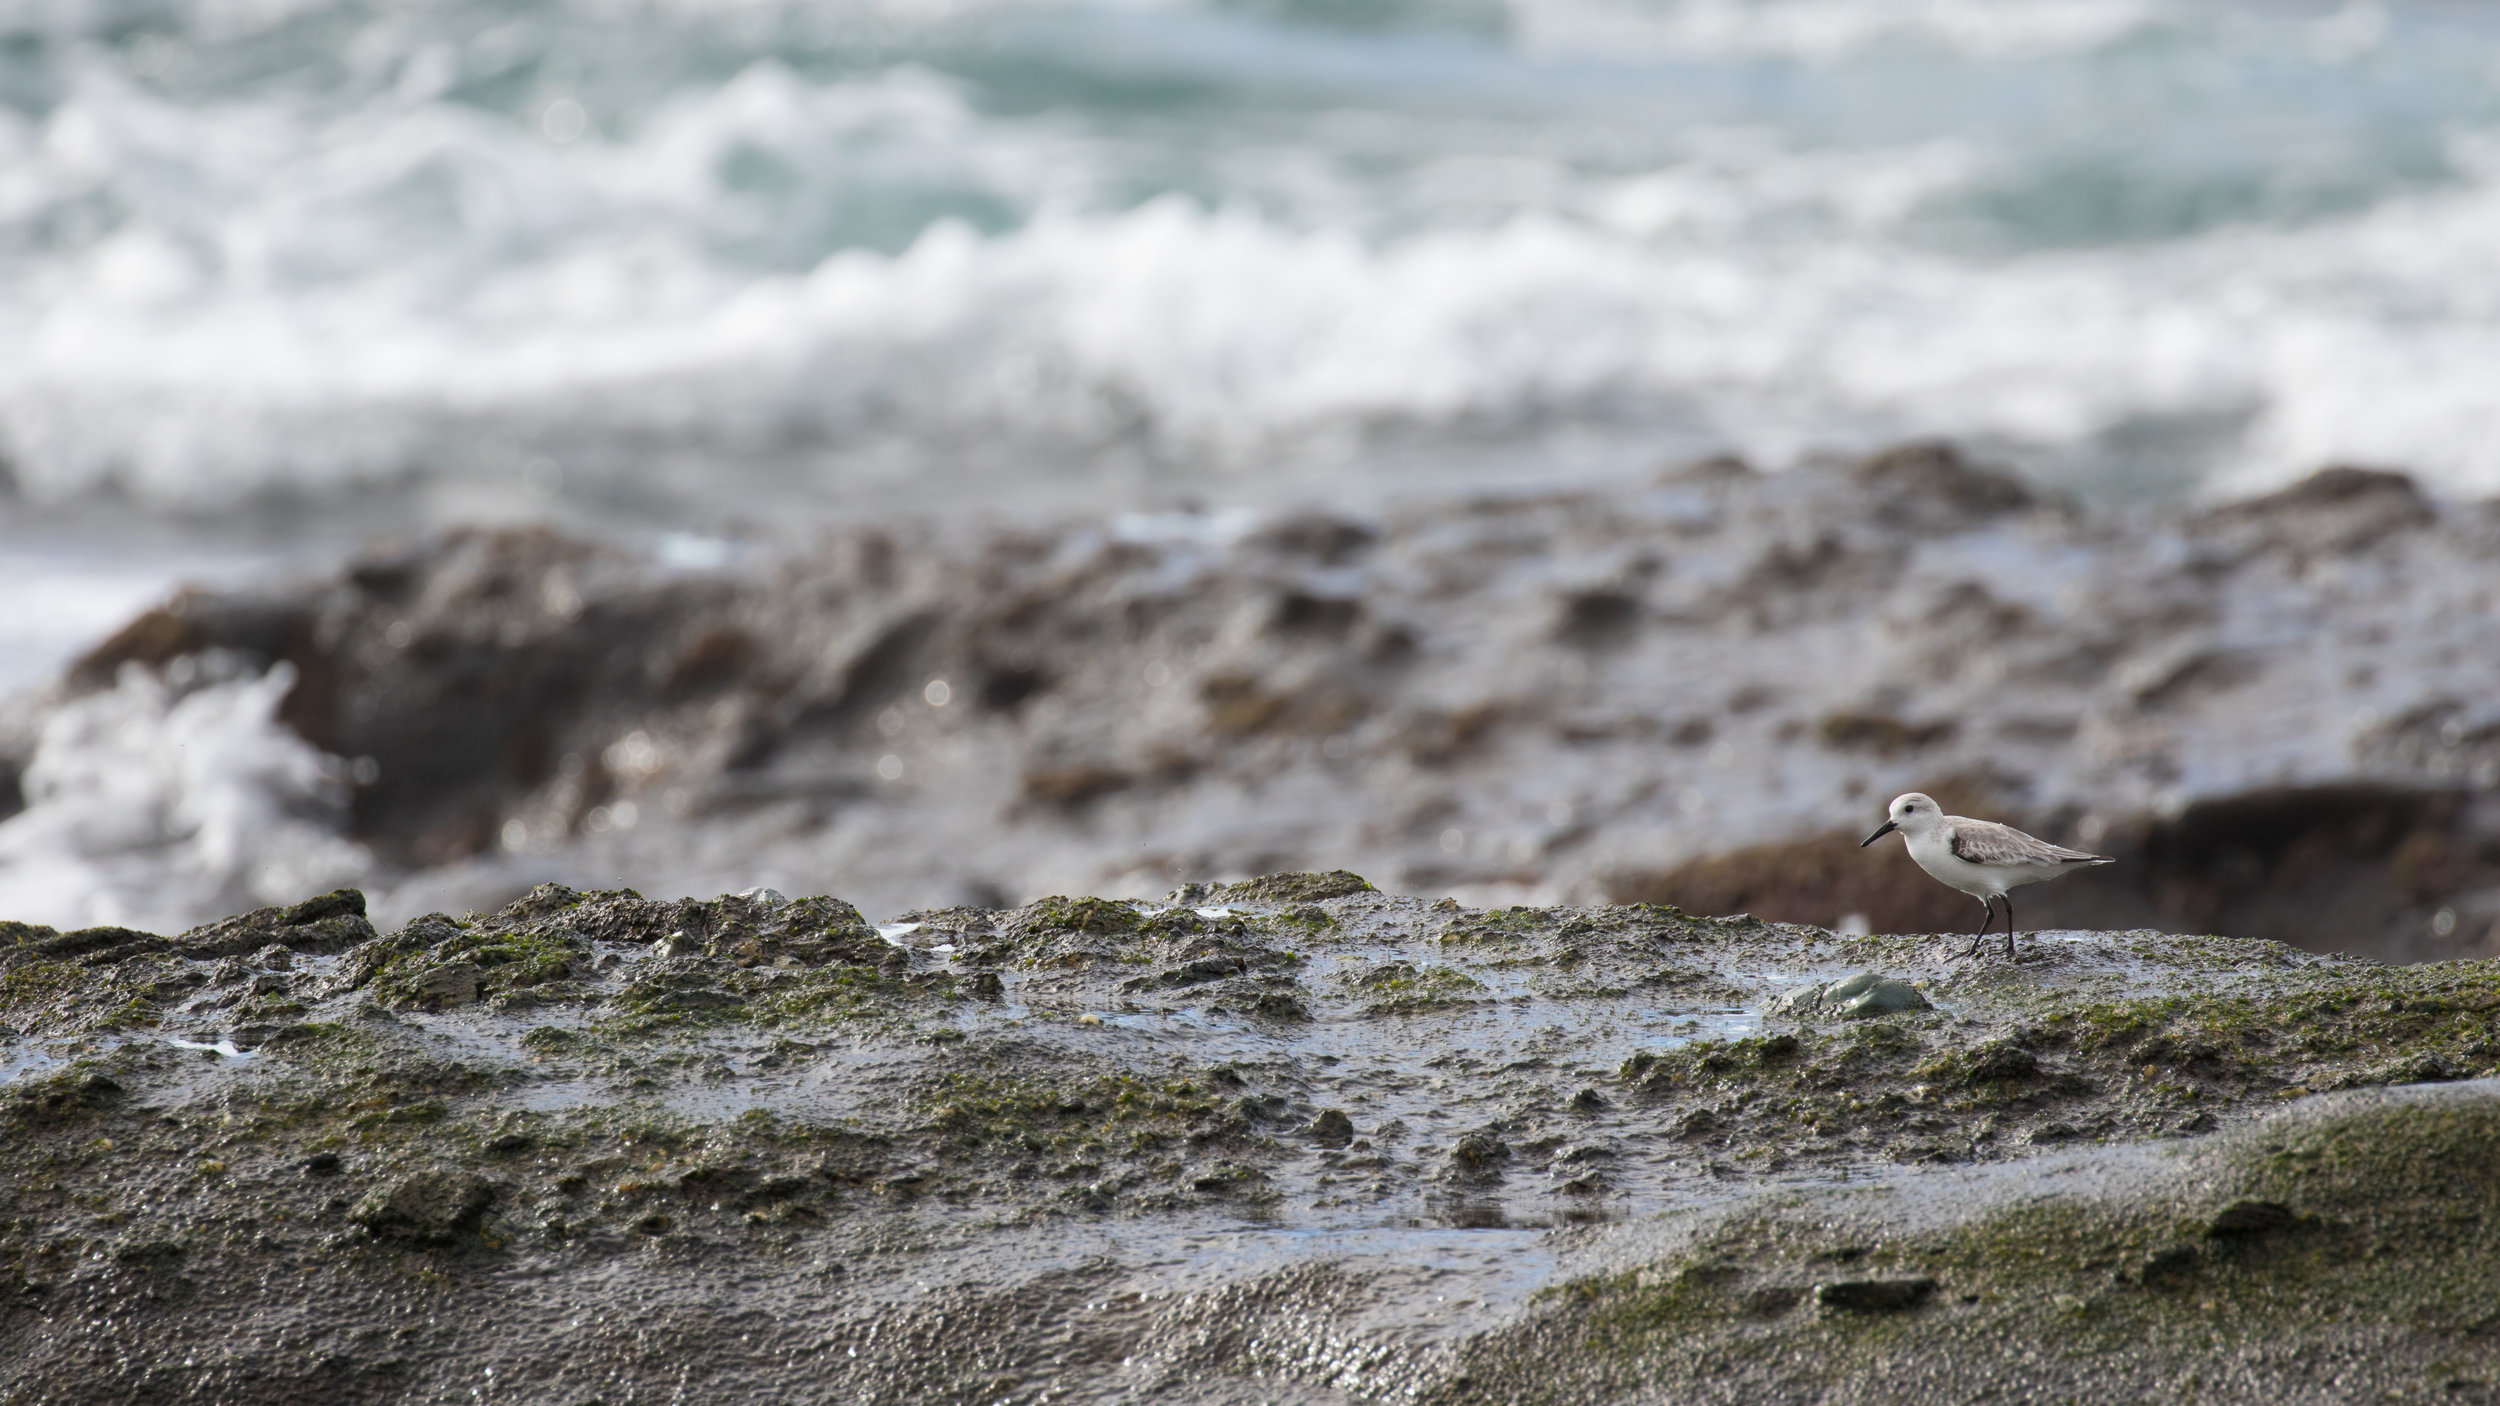 Sanderling (Calidris alba) in Laguna Beach, California, United States. December 2015. Not baited. Not called in.